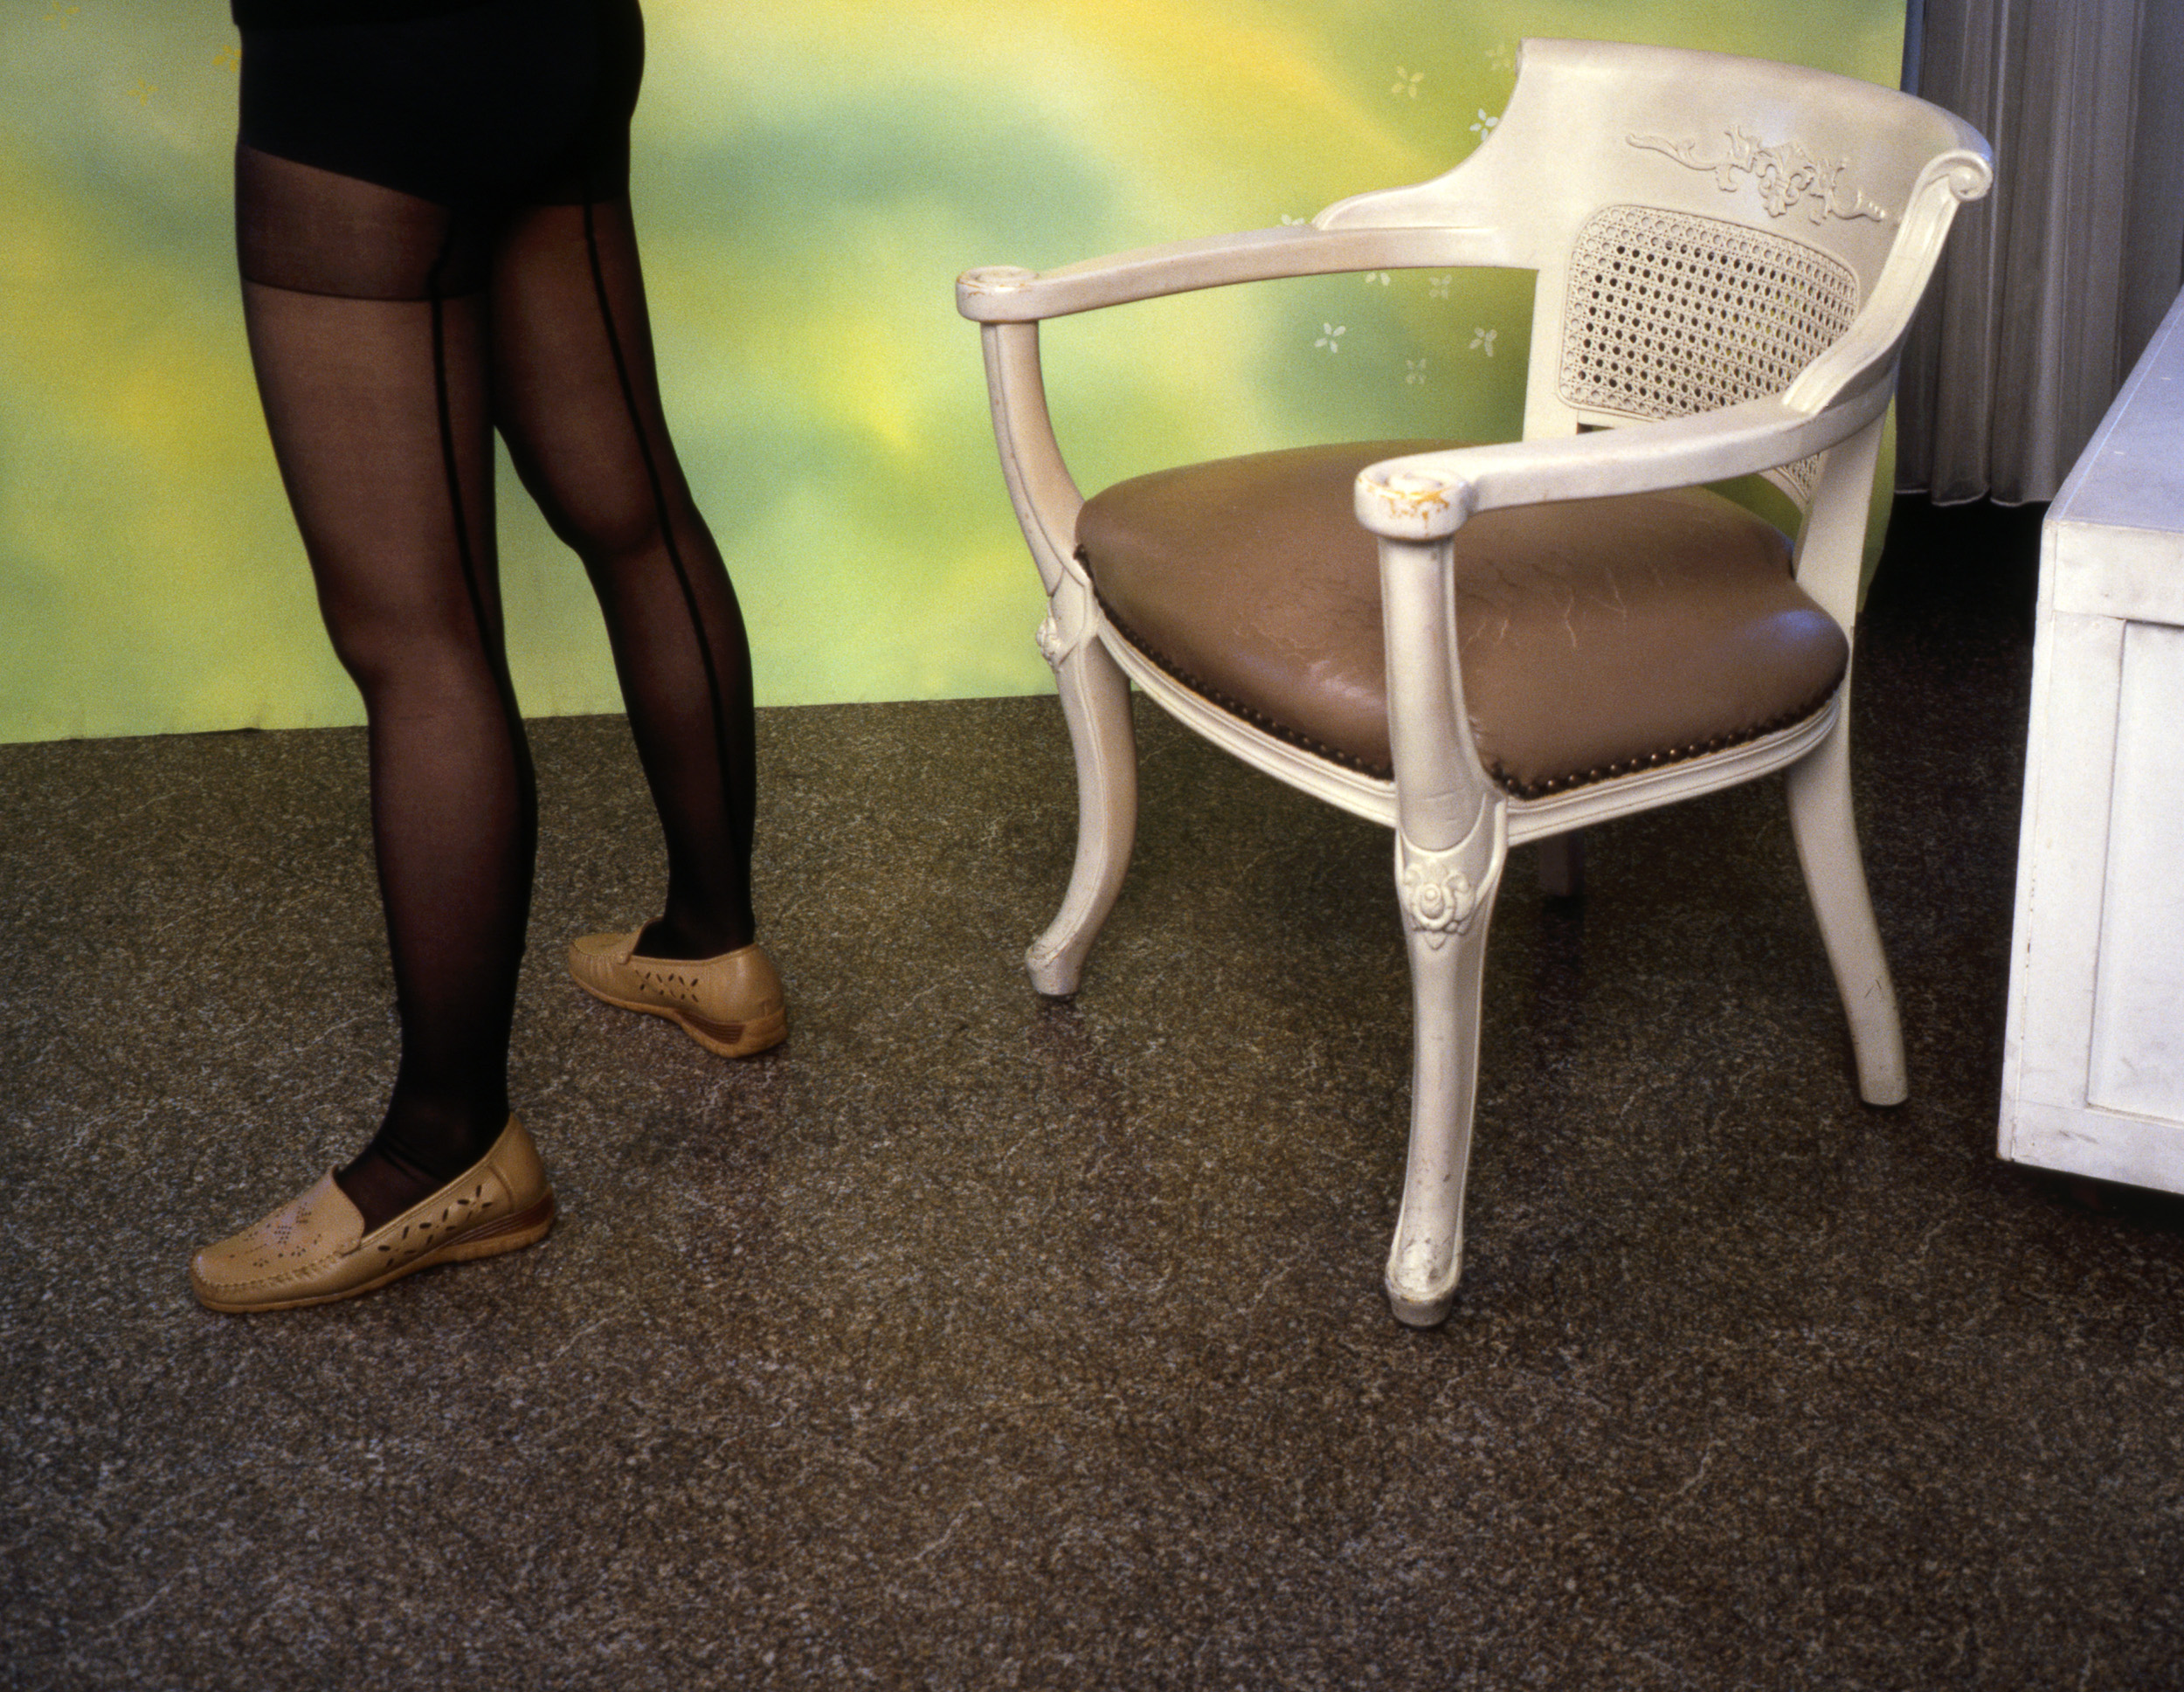 Untitled Production Still (Girlfriend's Legs)  2005, colour photograph, 58 x 76 cm / 23 x 30 in.